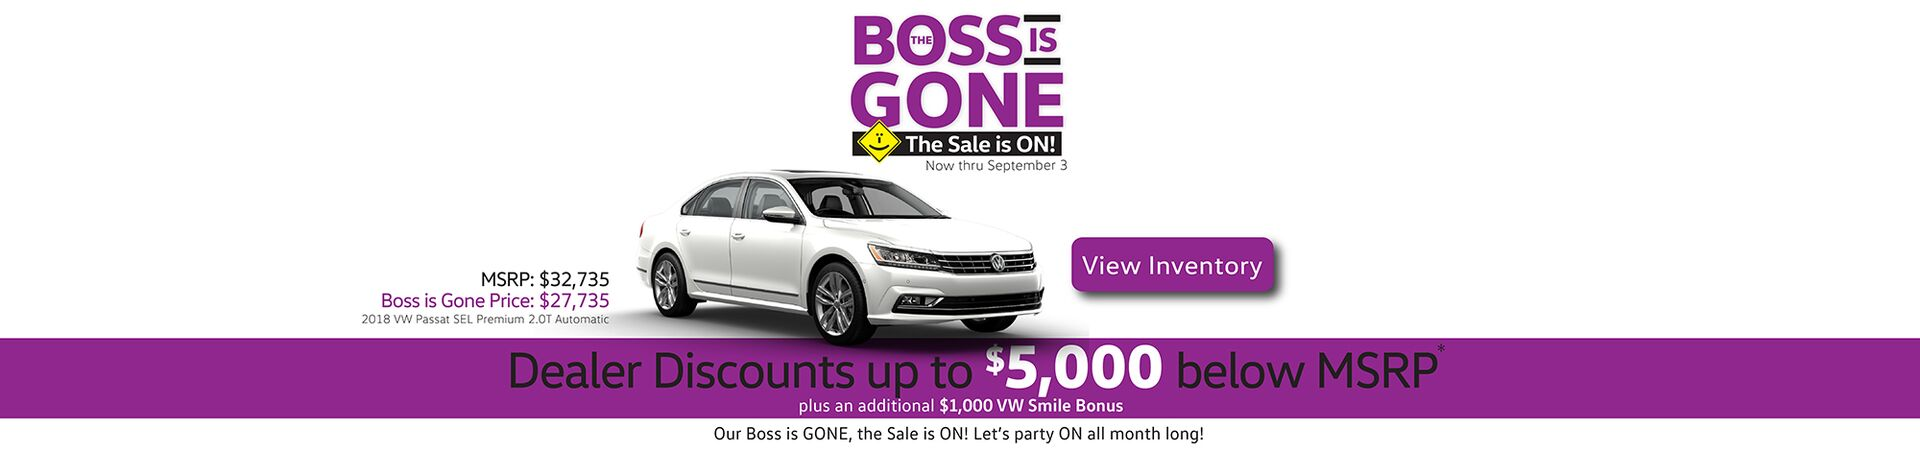 August Capo VW Boss is Gone Sale with discounts up to $6,000 below MSRP